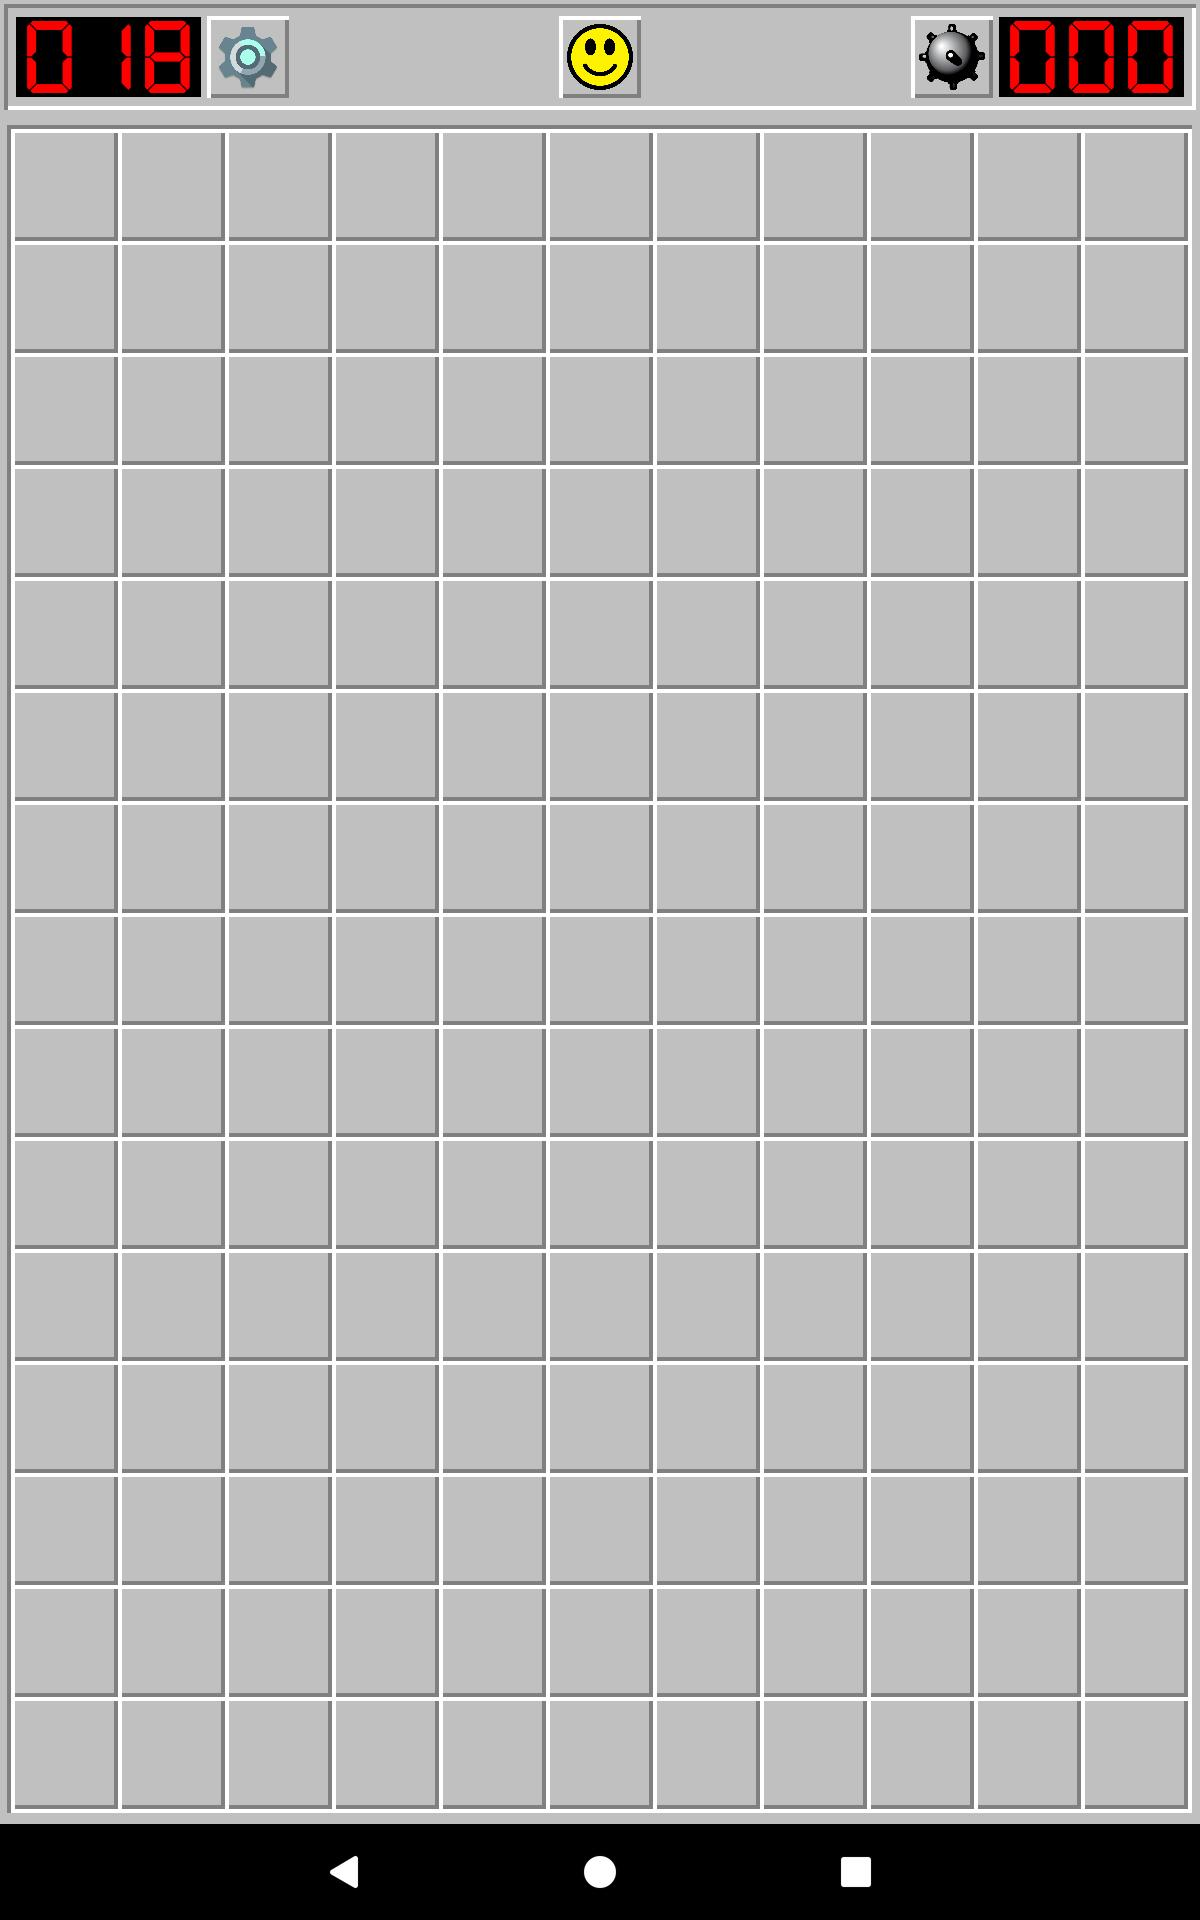 Classic Minesweeper (Online) cho Android - Tải về APK